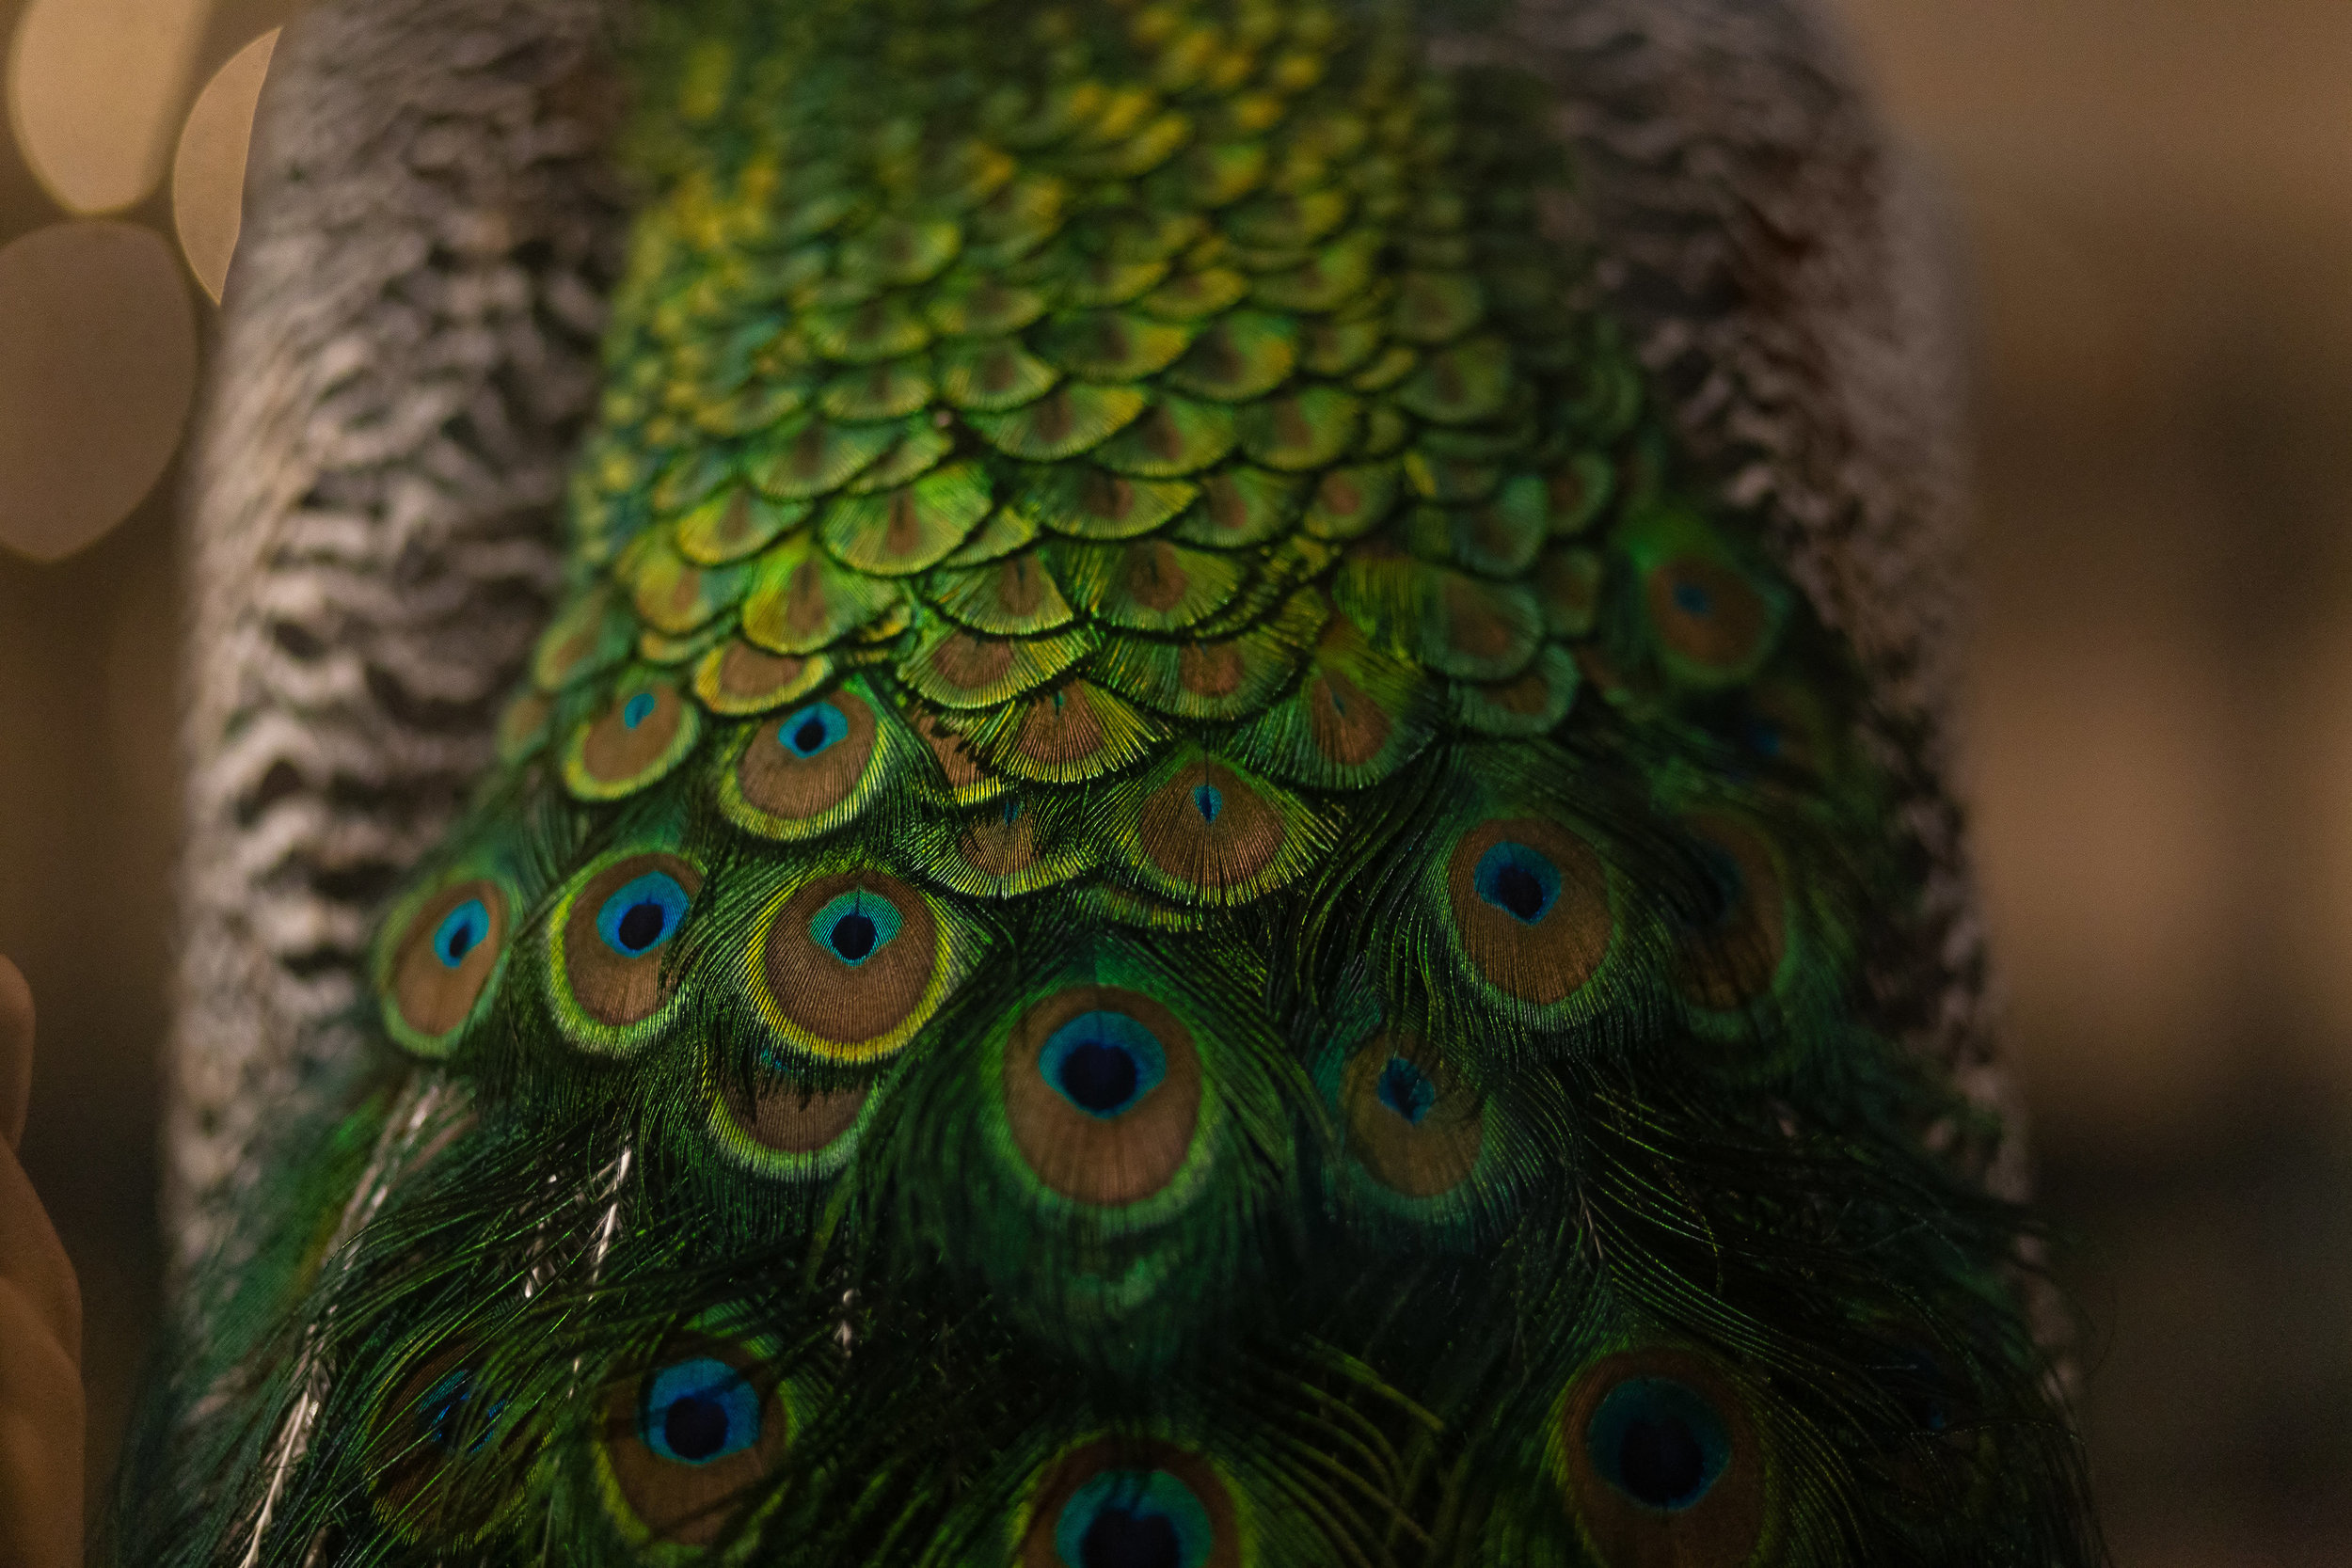 Details of the tail of a taxidermied peacock at the Naturkundmuseum, Berlin.